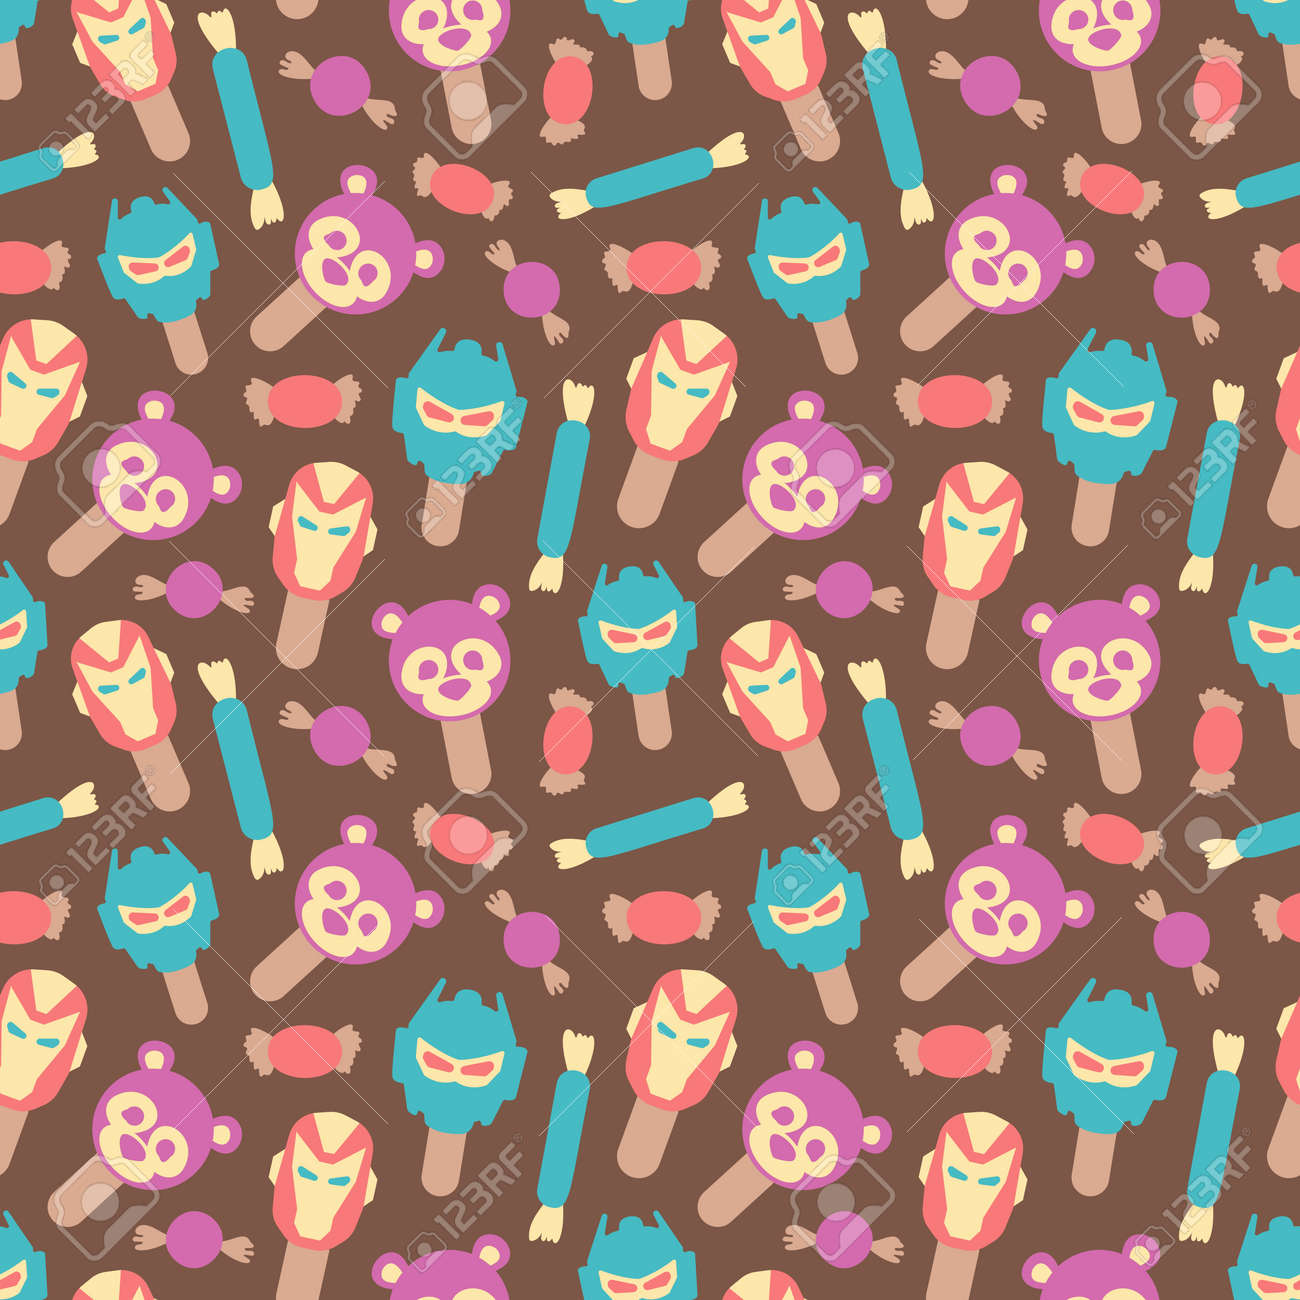 Seamless background pattern with many different colored and isolated sweets lollipops and ice cream vector illustration - 168741472